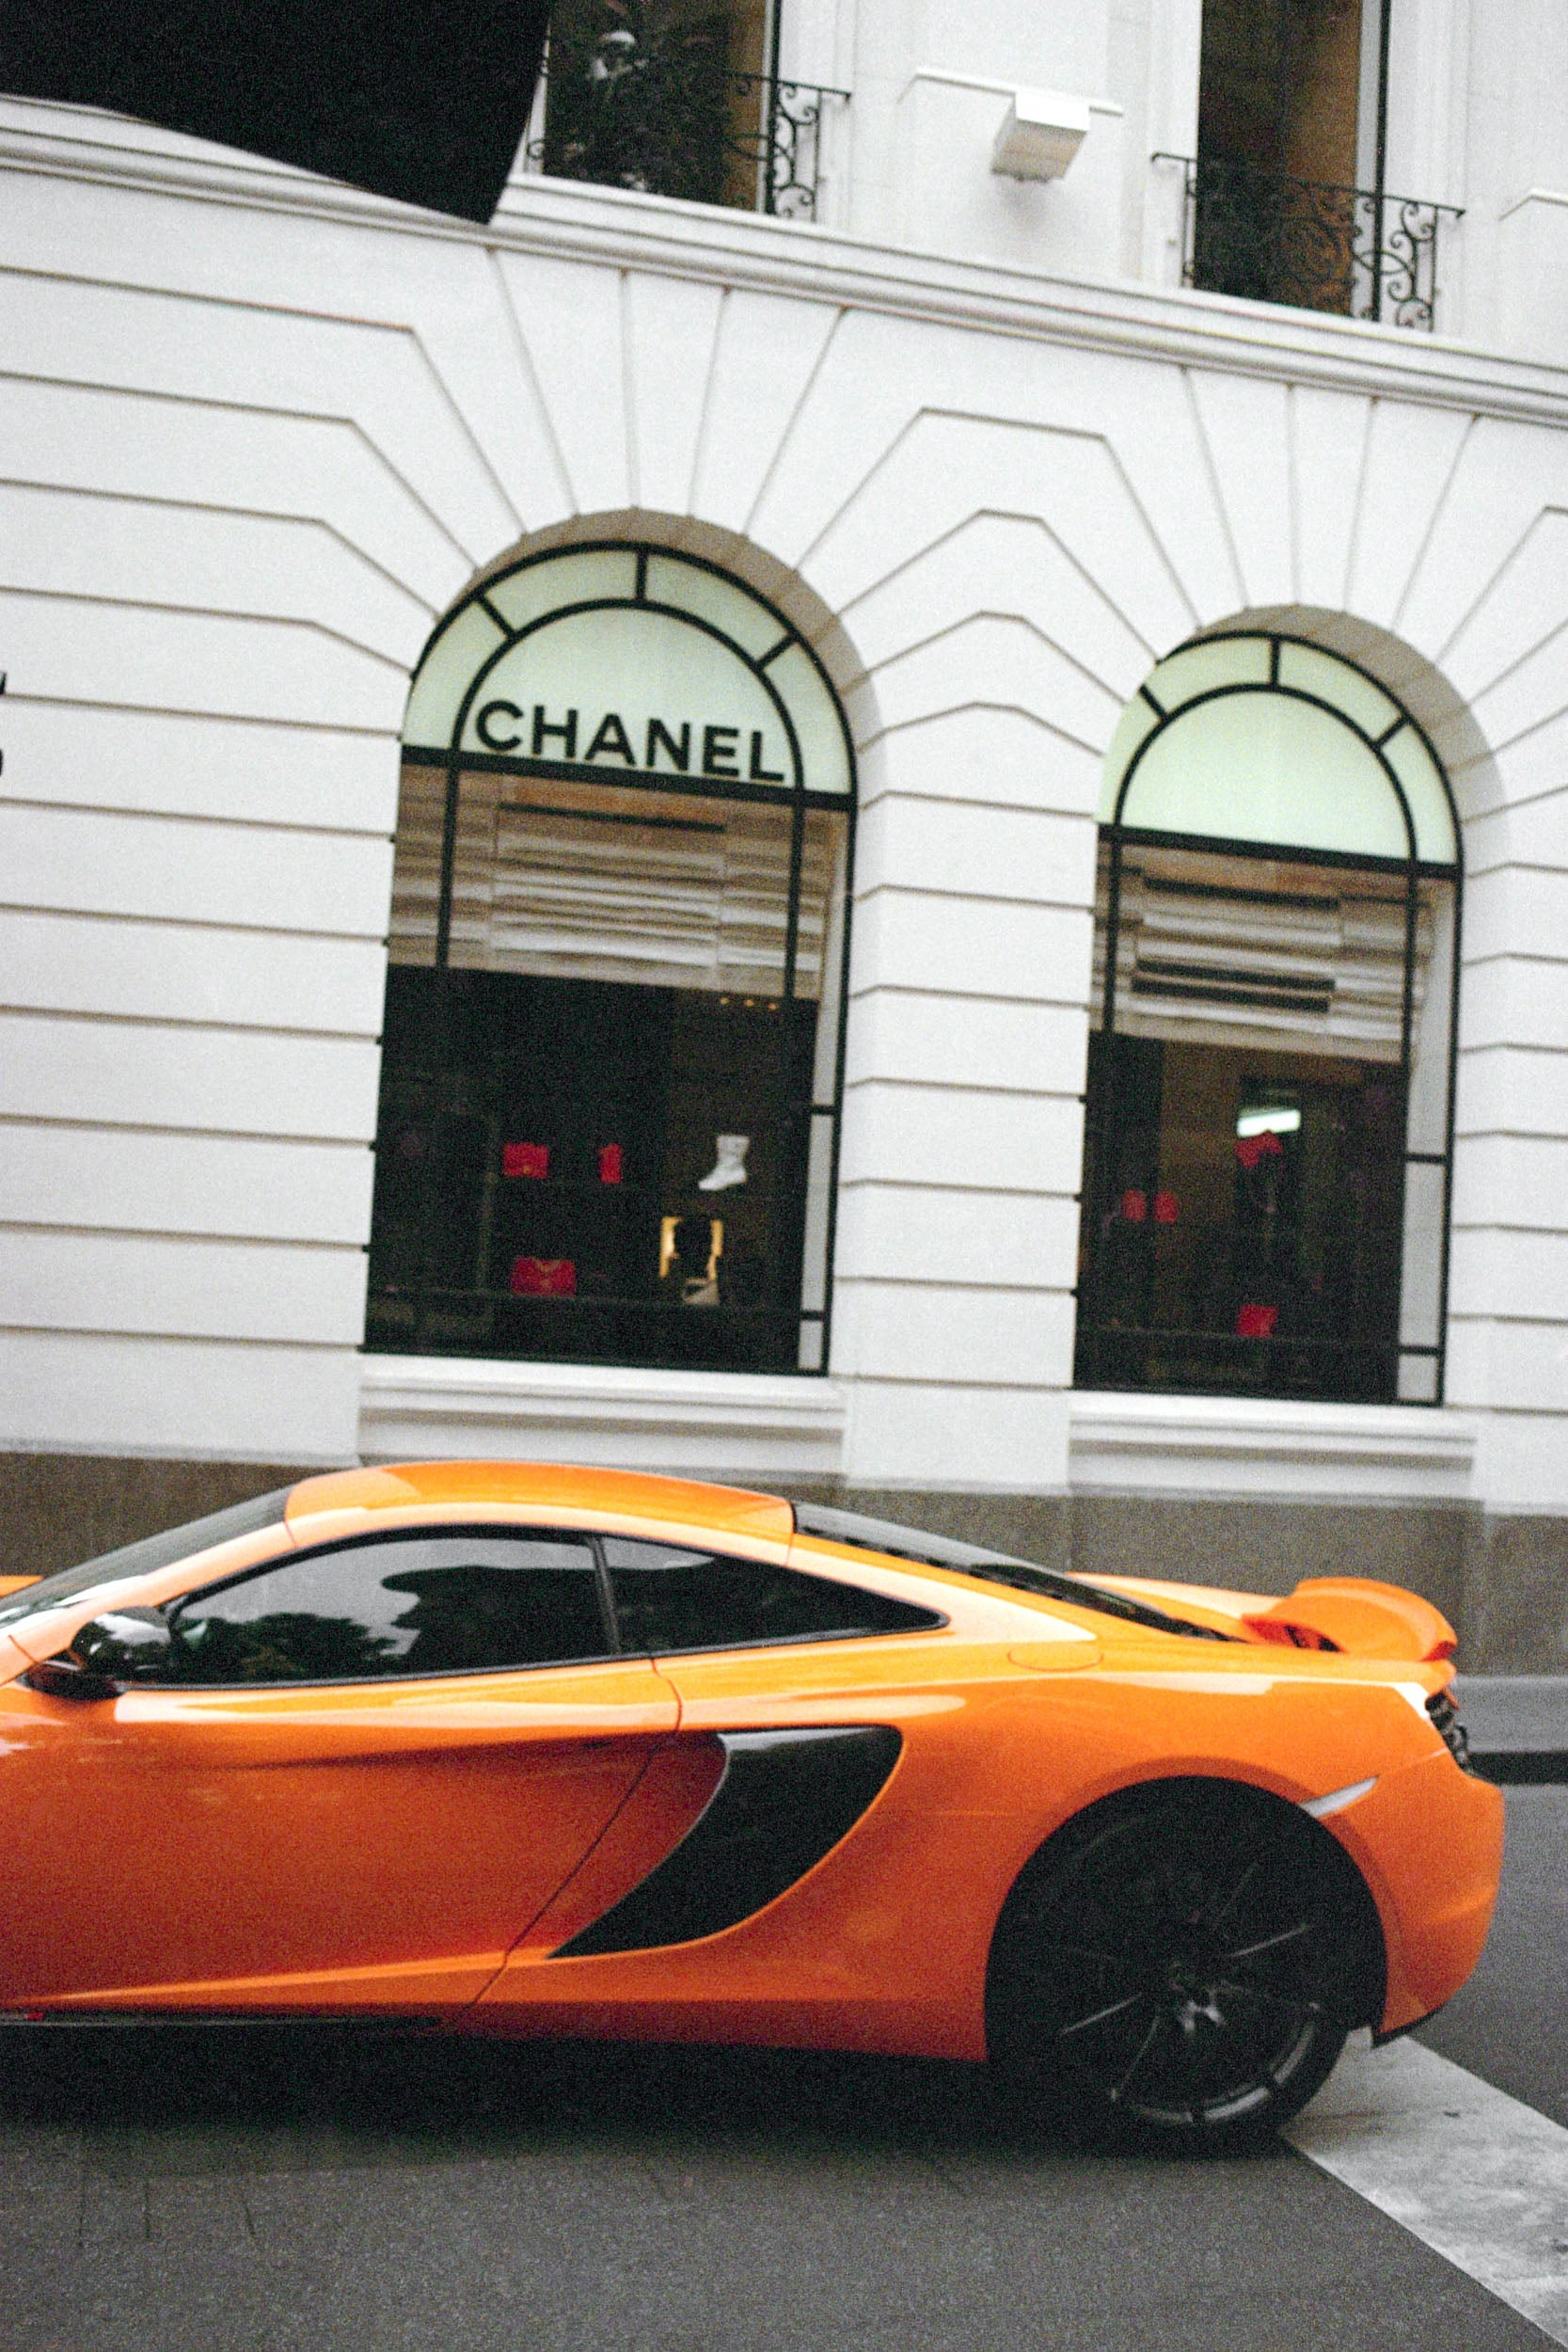 A yellow Lambourgini sits outside the Chanel store in Melbourne Australia